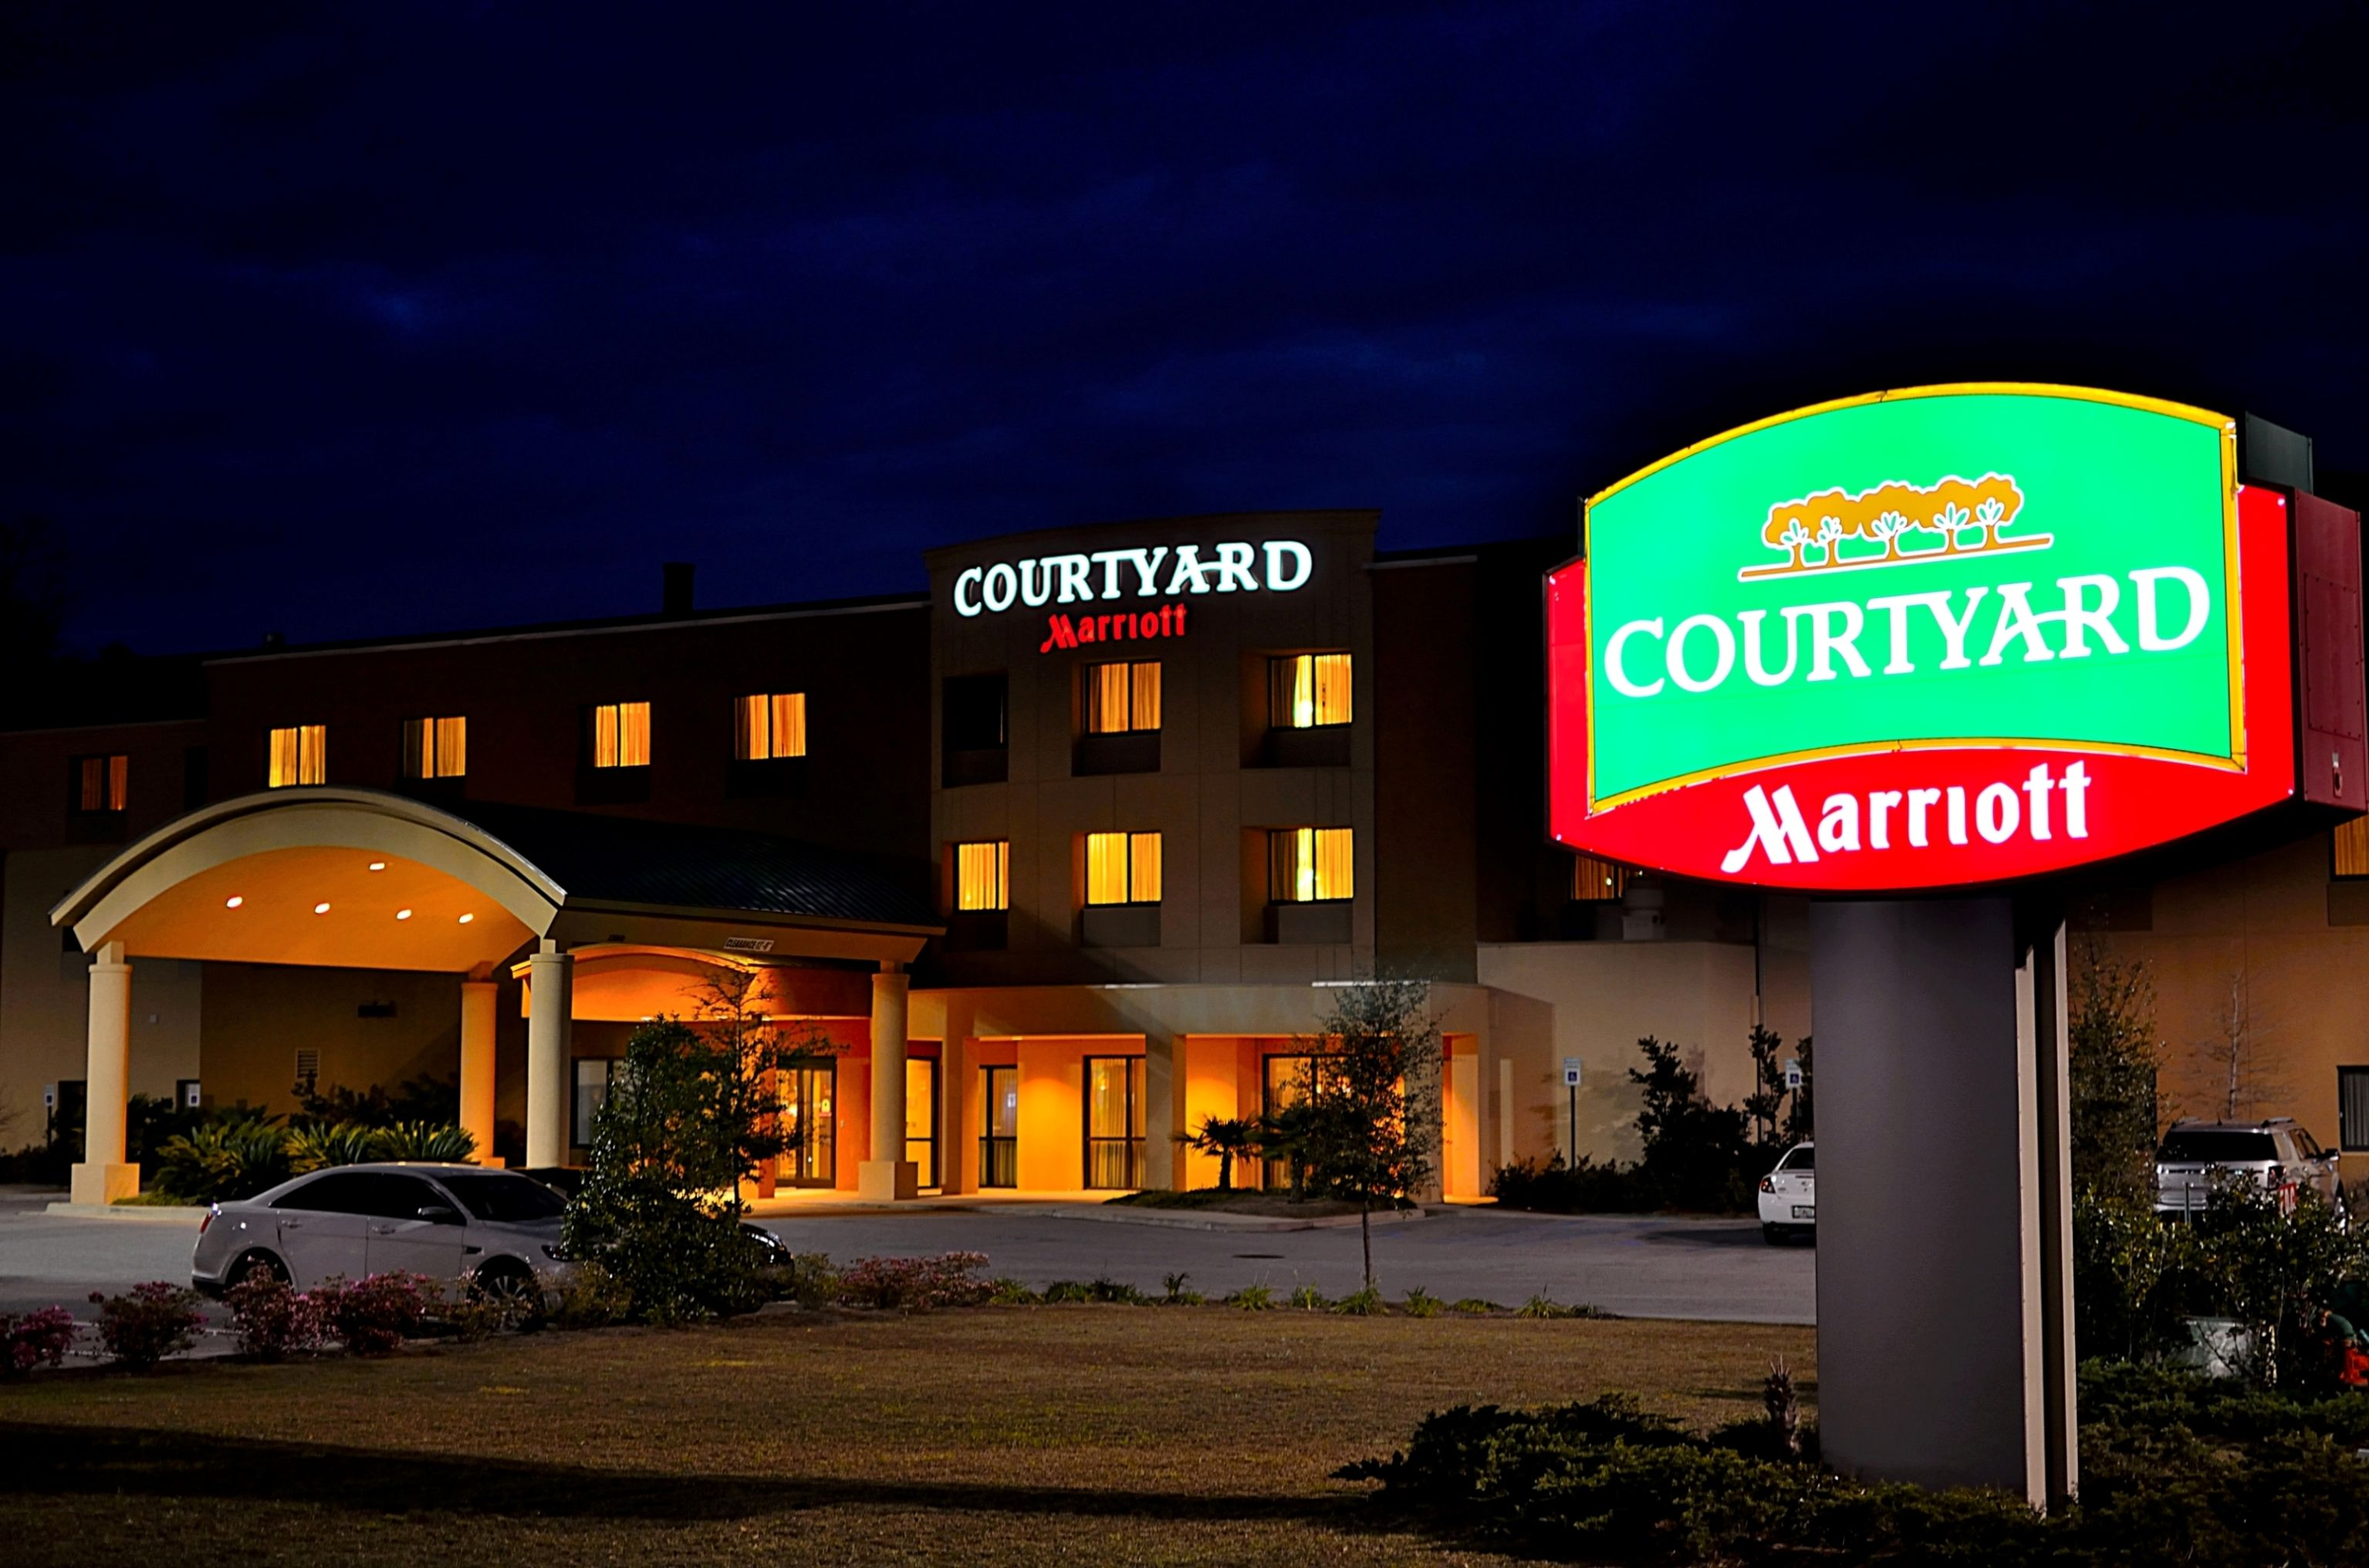 Courtyard Marriott Mobile/Daphne, Eastern Shore Located at